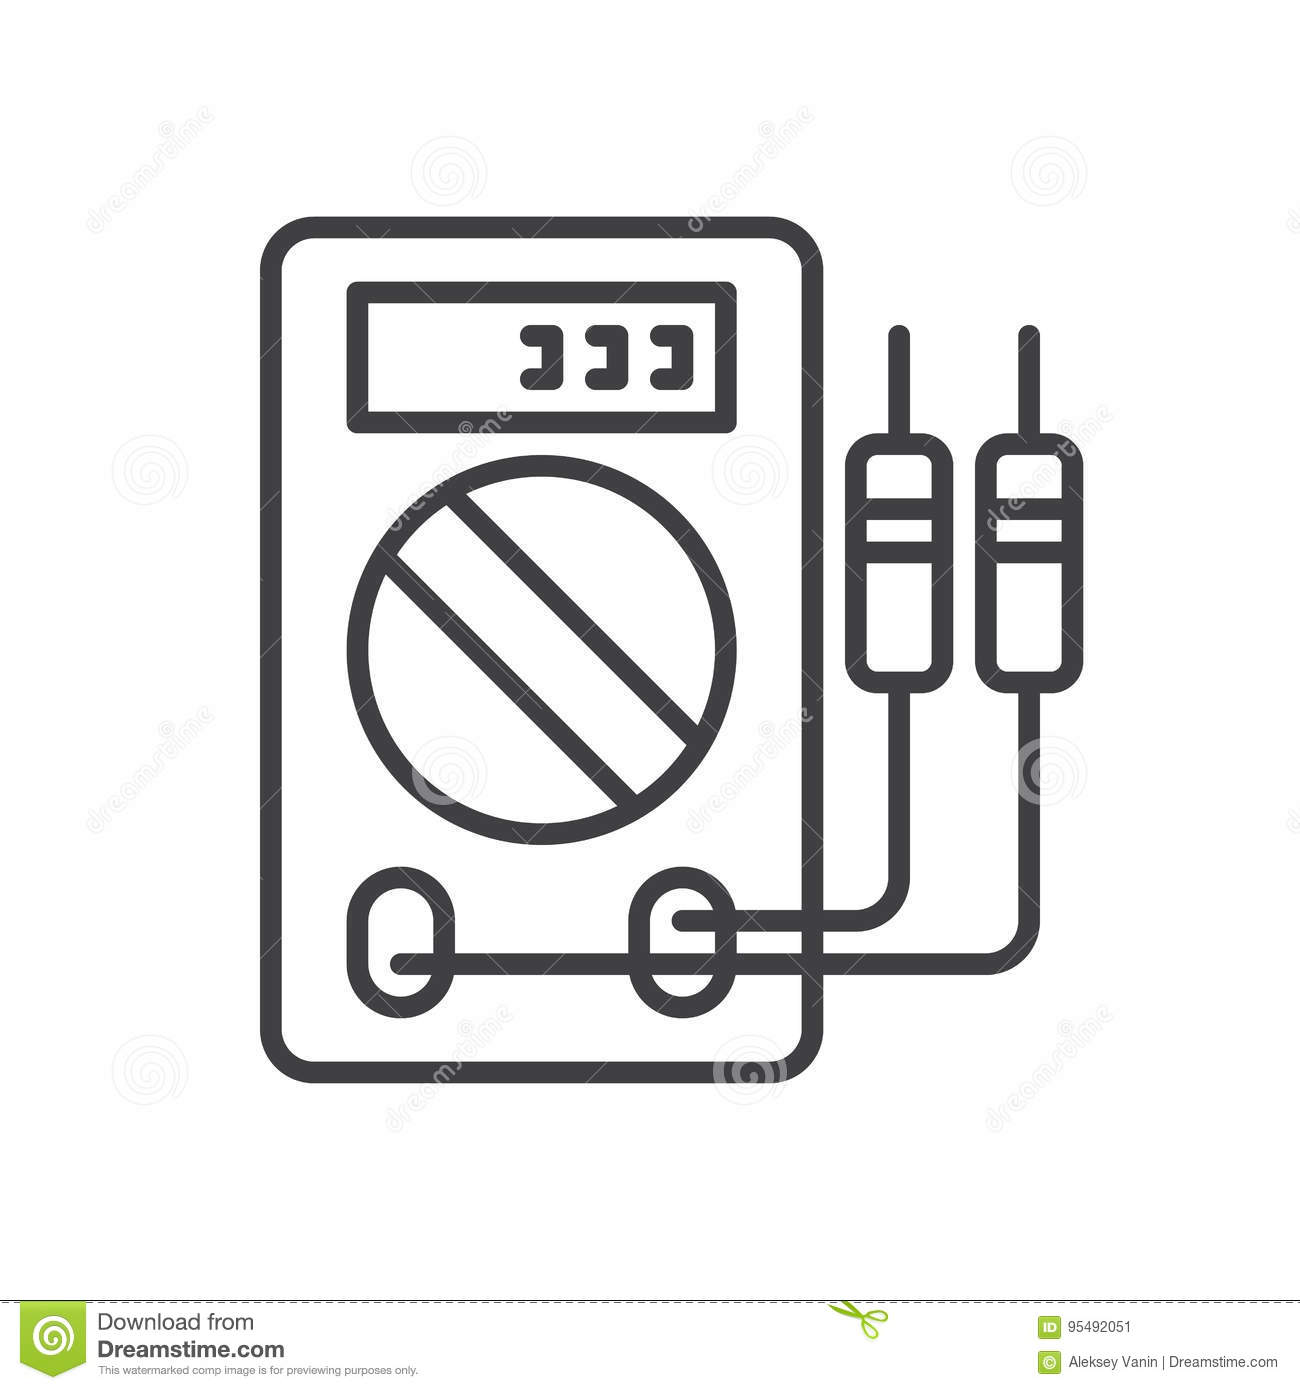 Symbols for mean gallery symbol and sign ideas symbol for voltmeter dolgular lovely symbol for dc voltage on a multimeter photos electrical buycottarizona biocorpaavc